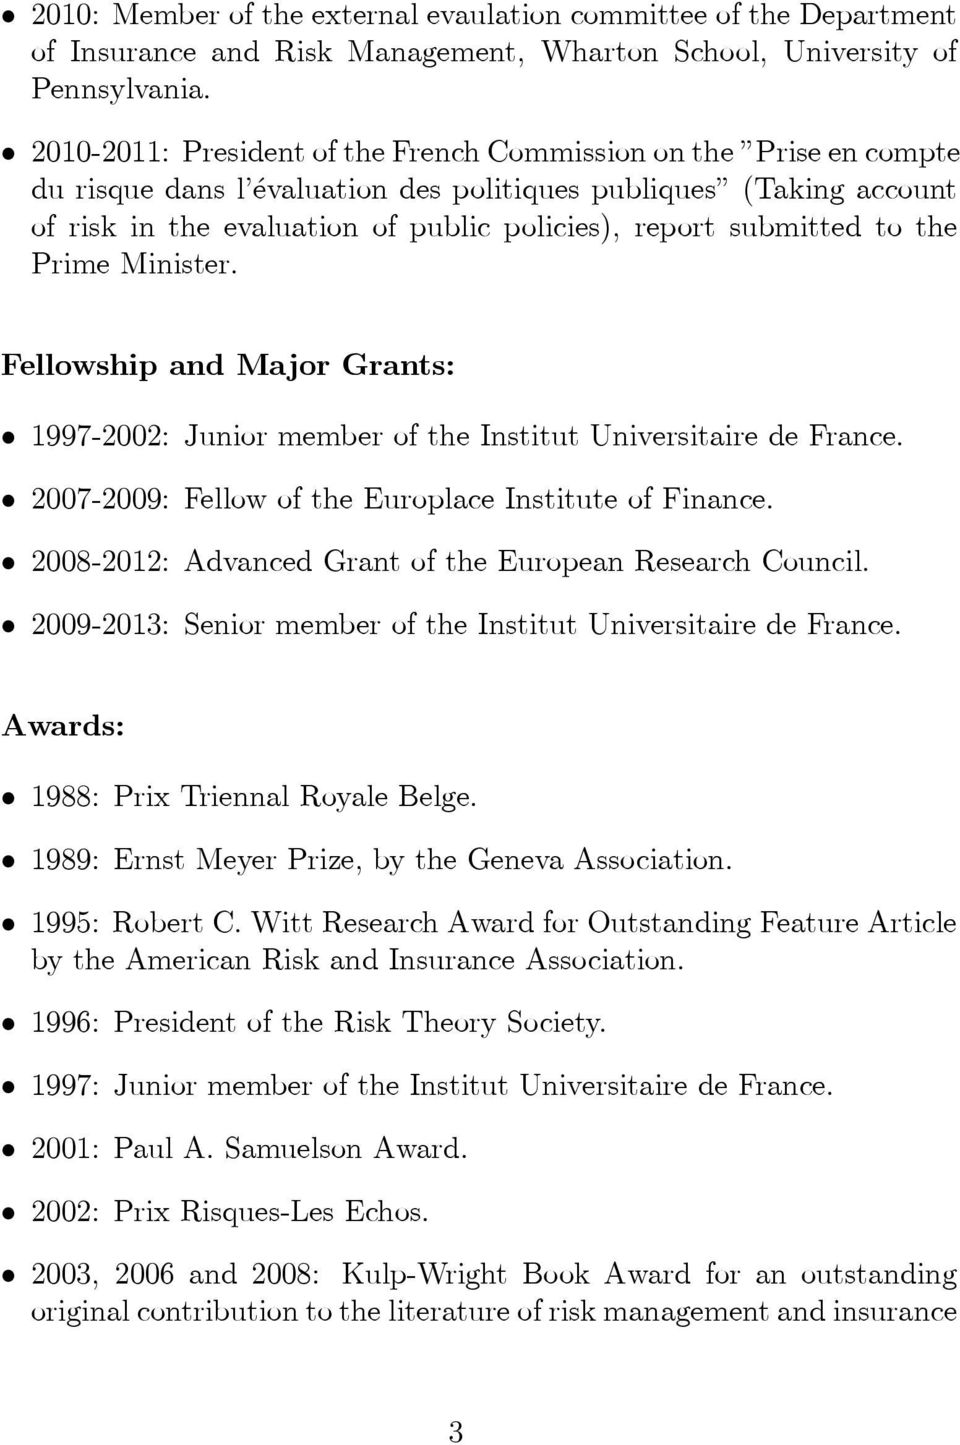 submitted to the Prime Minister. Fellowship and Major Grants: 1997-2002: Junior member of the Institut Universitaire de France. 2007-2009: Fellow of the Europlace Institute of Finance.